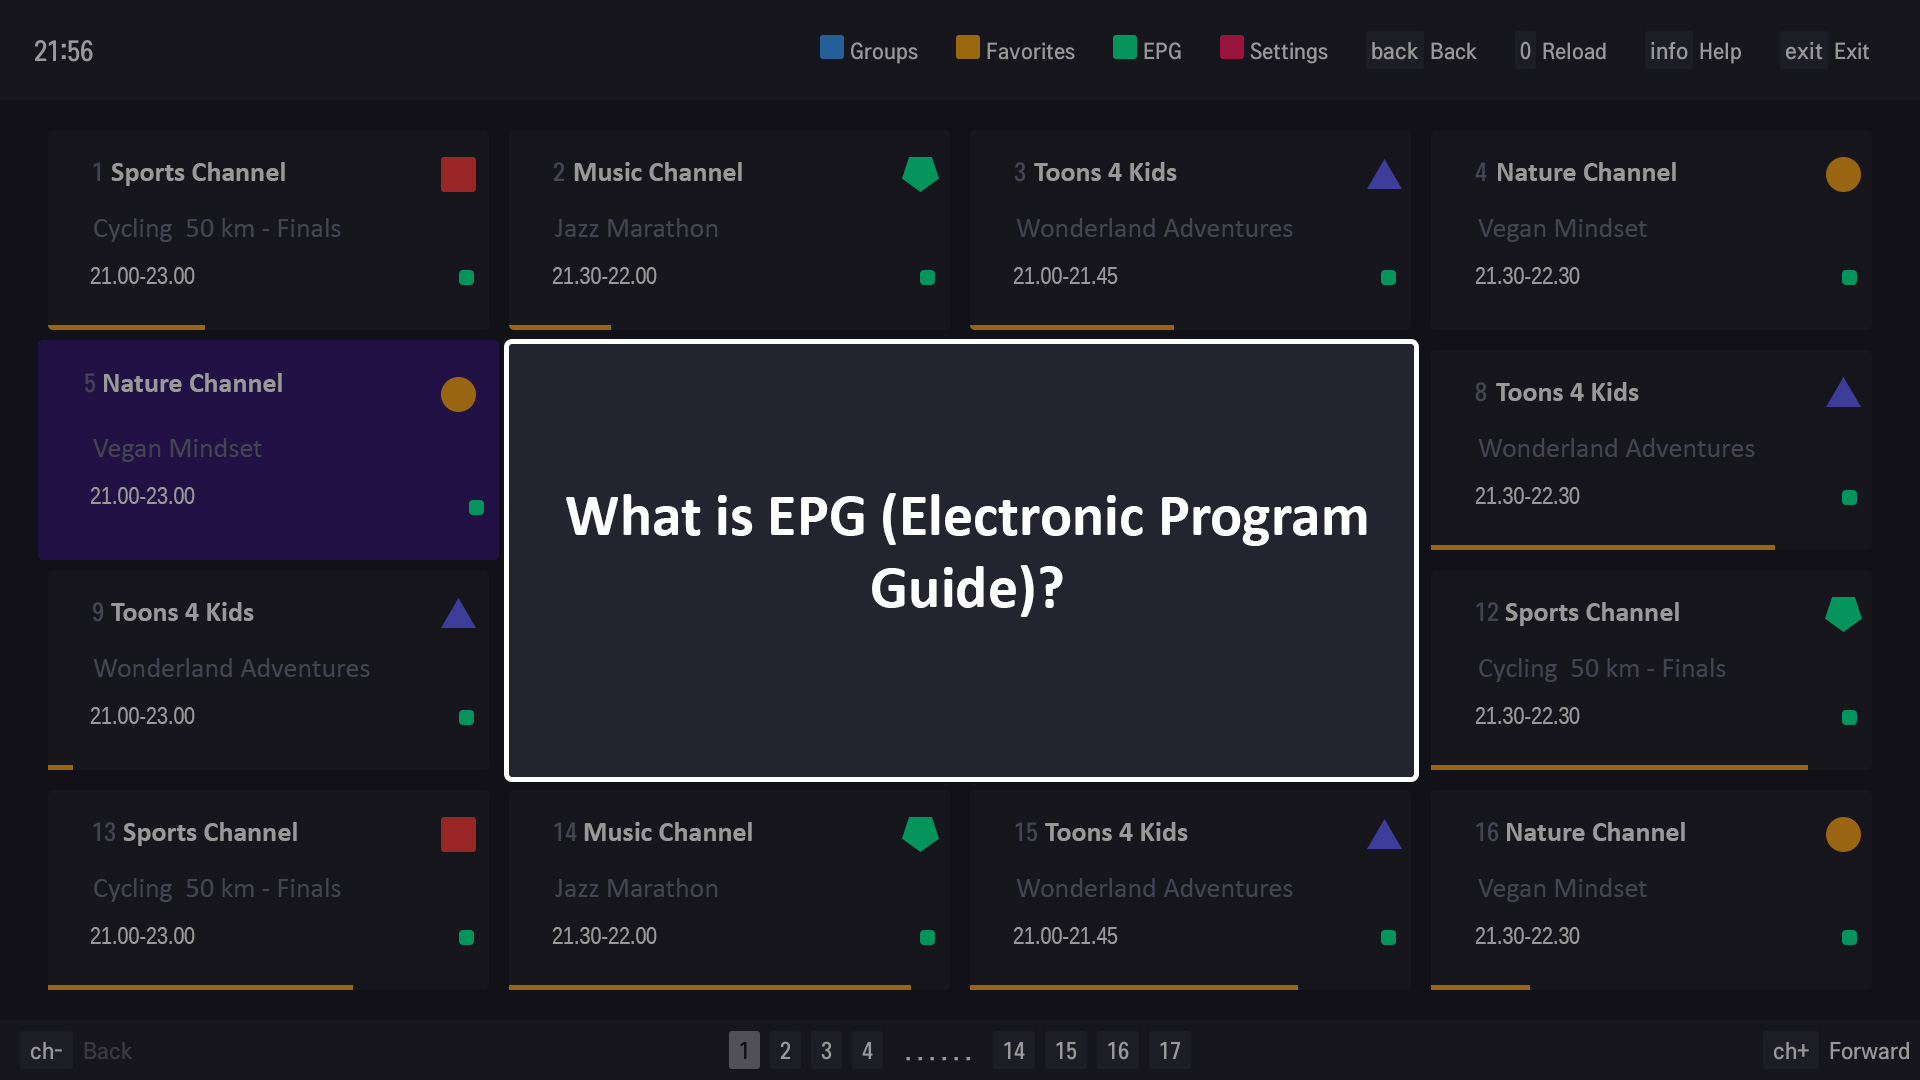 What is EPG (Electronic Program Guide)?